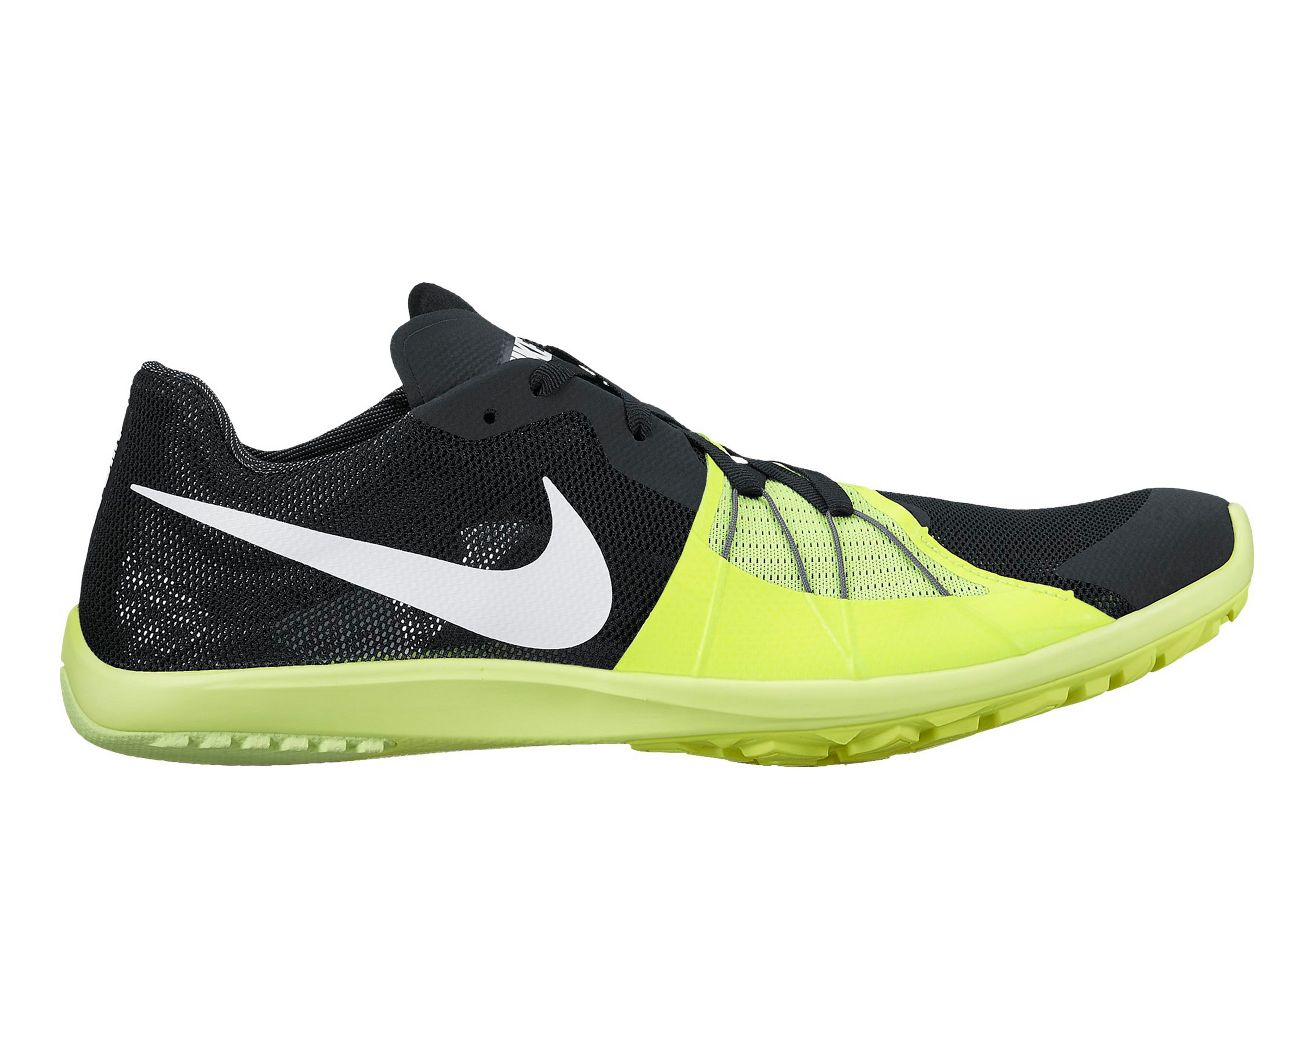 Nike Zoom Forever Waffle 5 Cross Country Shoe